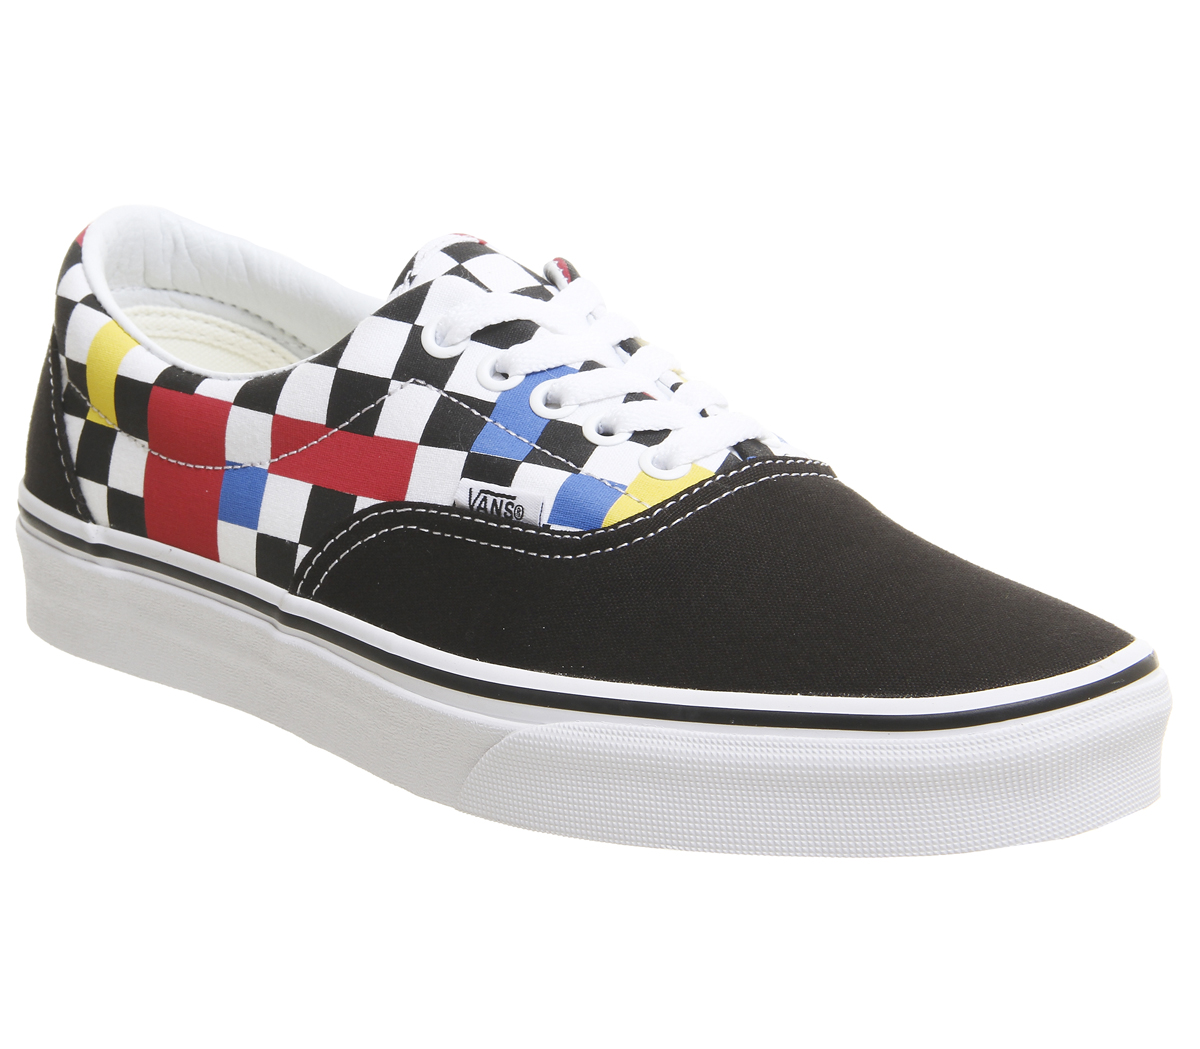 a9832cea779 Sentinel Mens Vans Era Trainers Geometric Black Multi True White Exclusive  Trainers Shoes